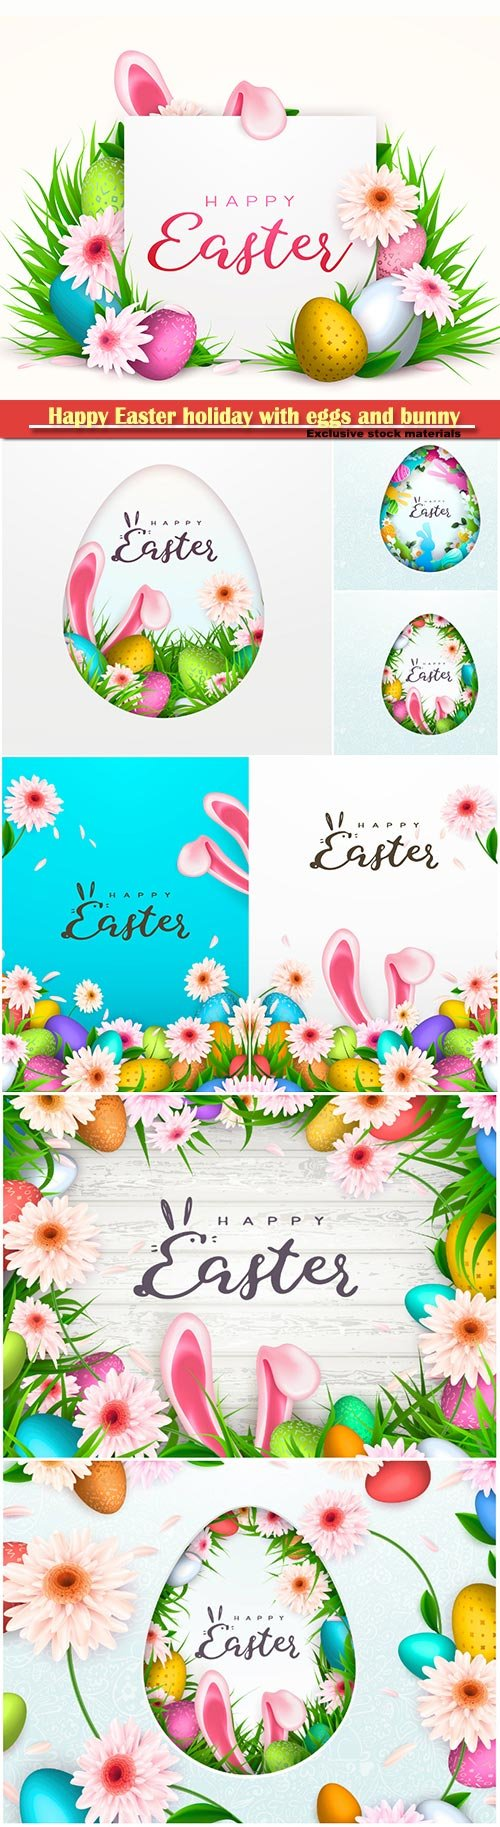 Happy Easter holiday with eggs and bunny, vector illustration # 5